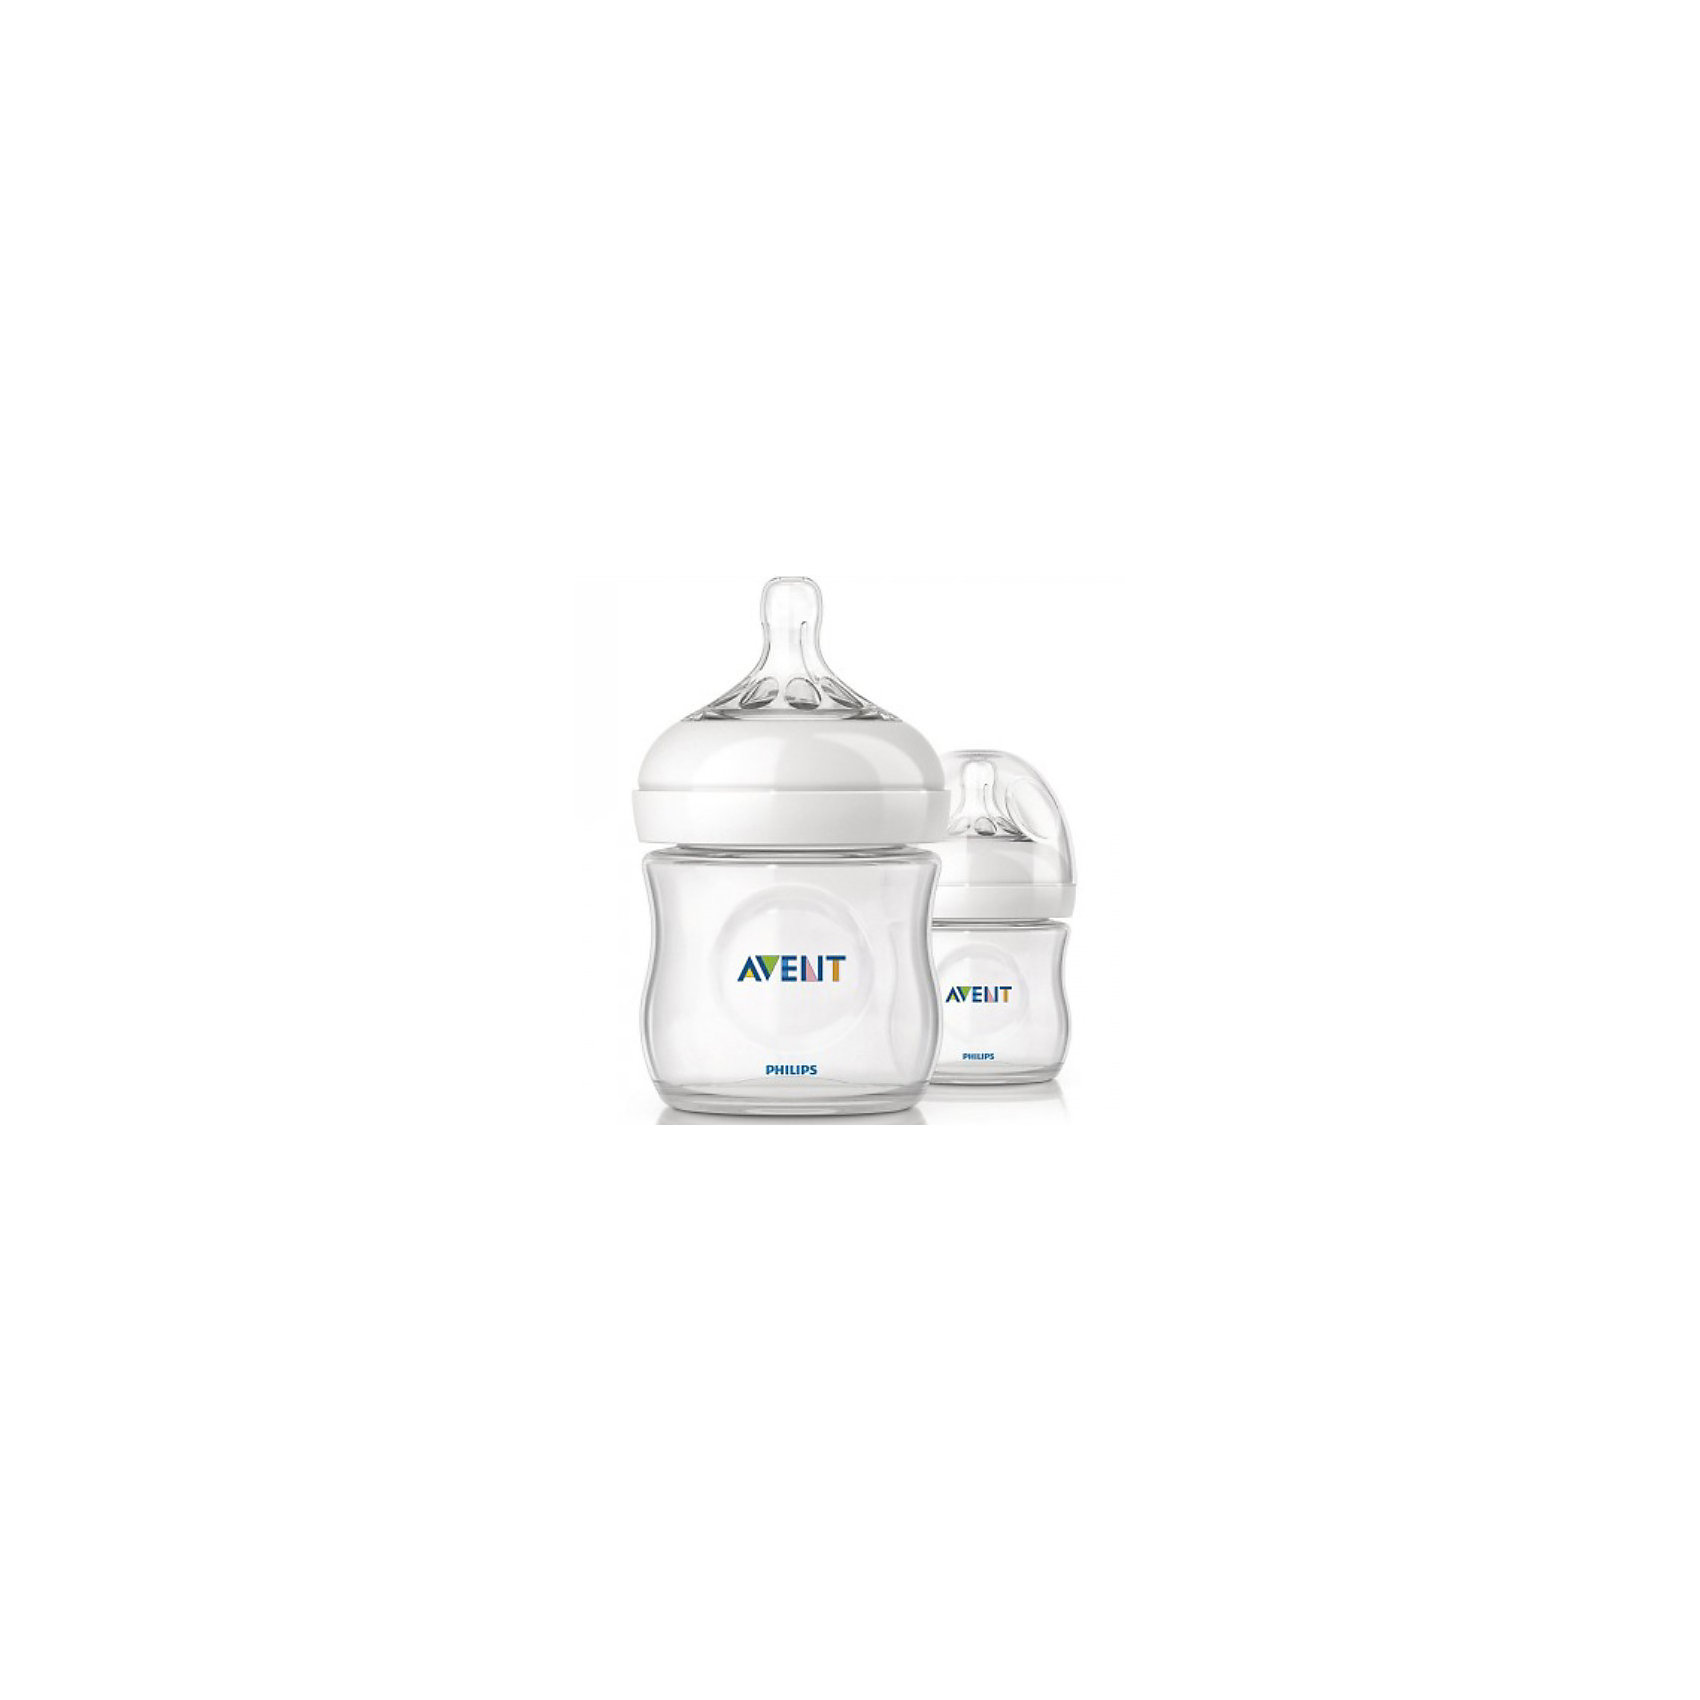 ��������� ��� ��������� Natural, 125 ��, ��������� �����, 2 ��., AVENT (PHILIPS AVENT)